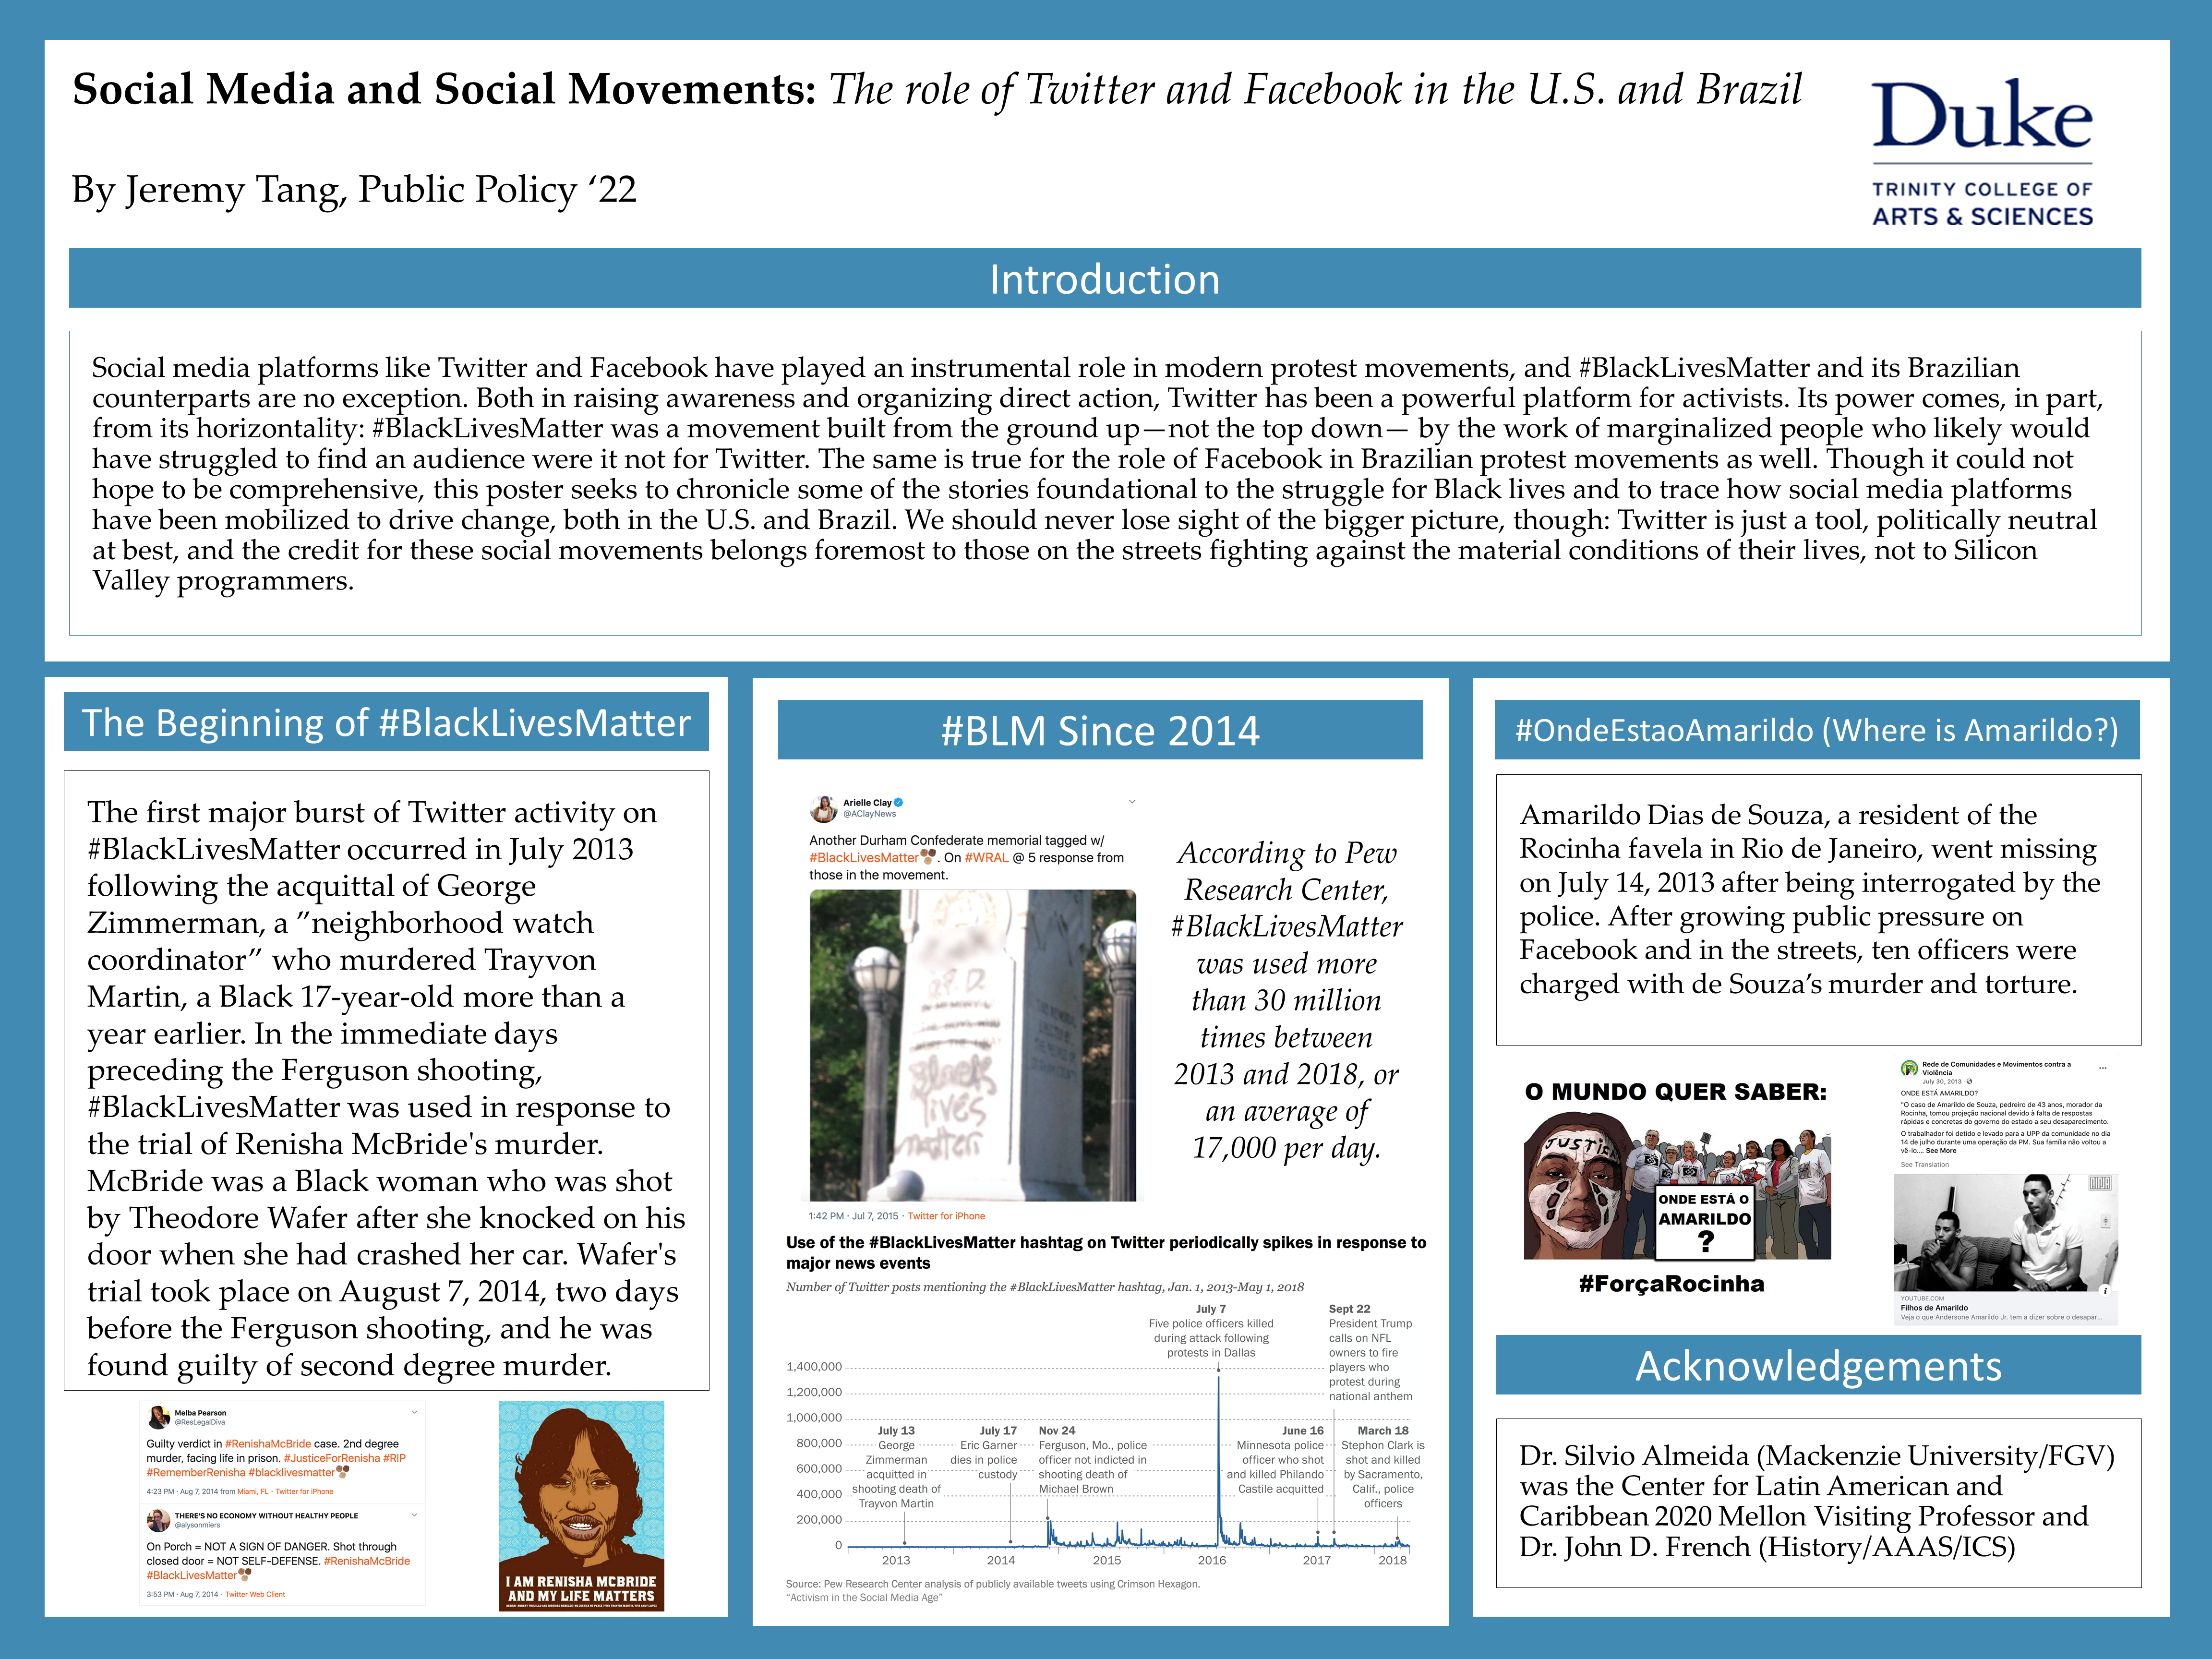 Social Media and Social Movements